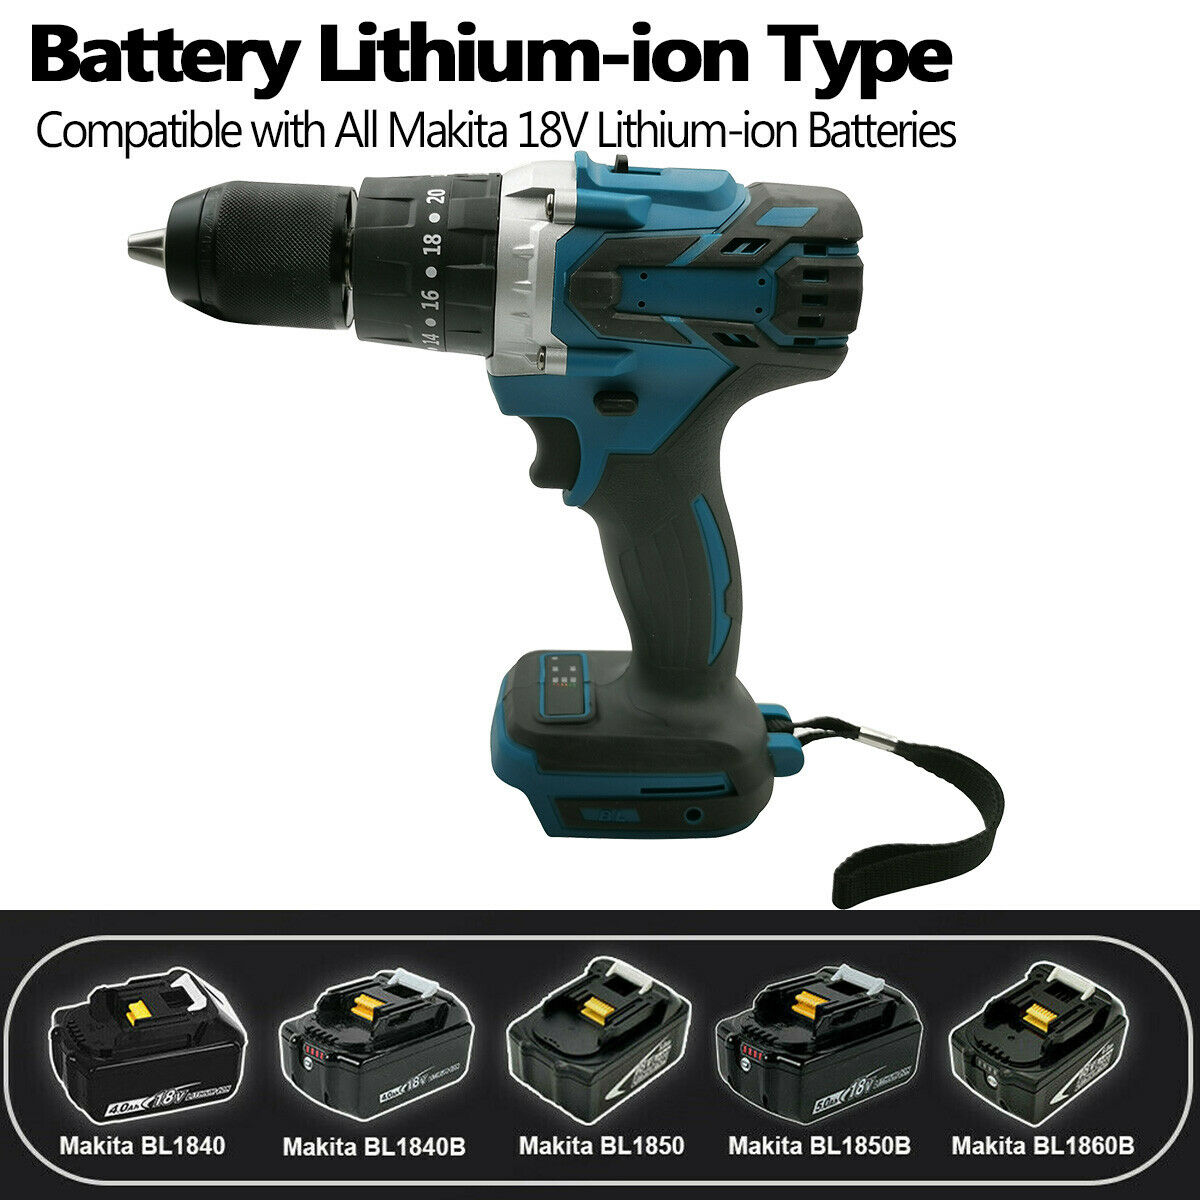 18V Battery 3 in 1 Brushless Electric Hammer Drill Electric Screwdriver 13mm 20+3 Torque Cordless Impact Drill set